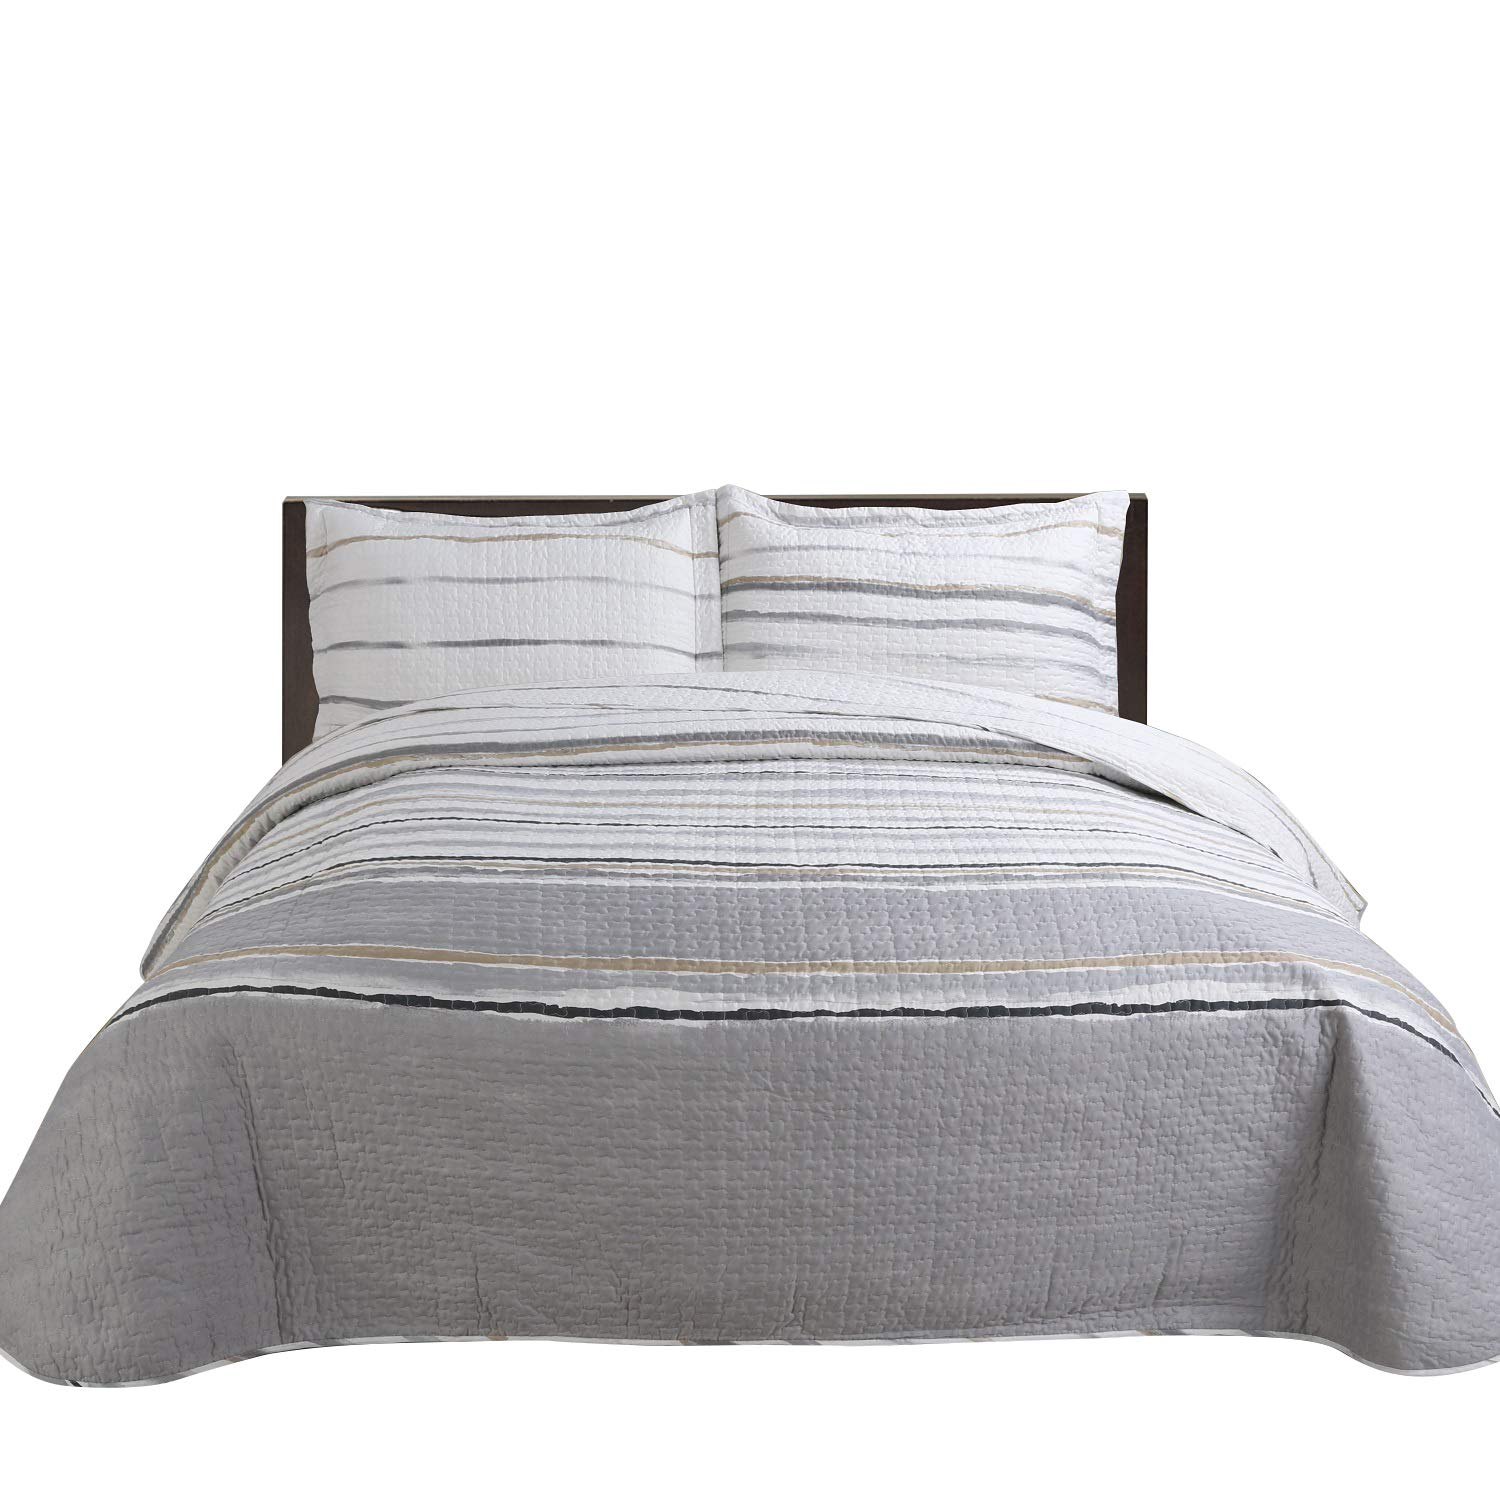 Hilin Fashion Microfiber Reversible Printing 2-Pieces Quilt Set Twin Size with Shams,as Bedspread,Coverlet or Bed Cover-Soft,Lightweight and Hypoallergenic (Rene Grigio, Twin)